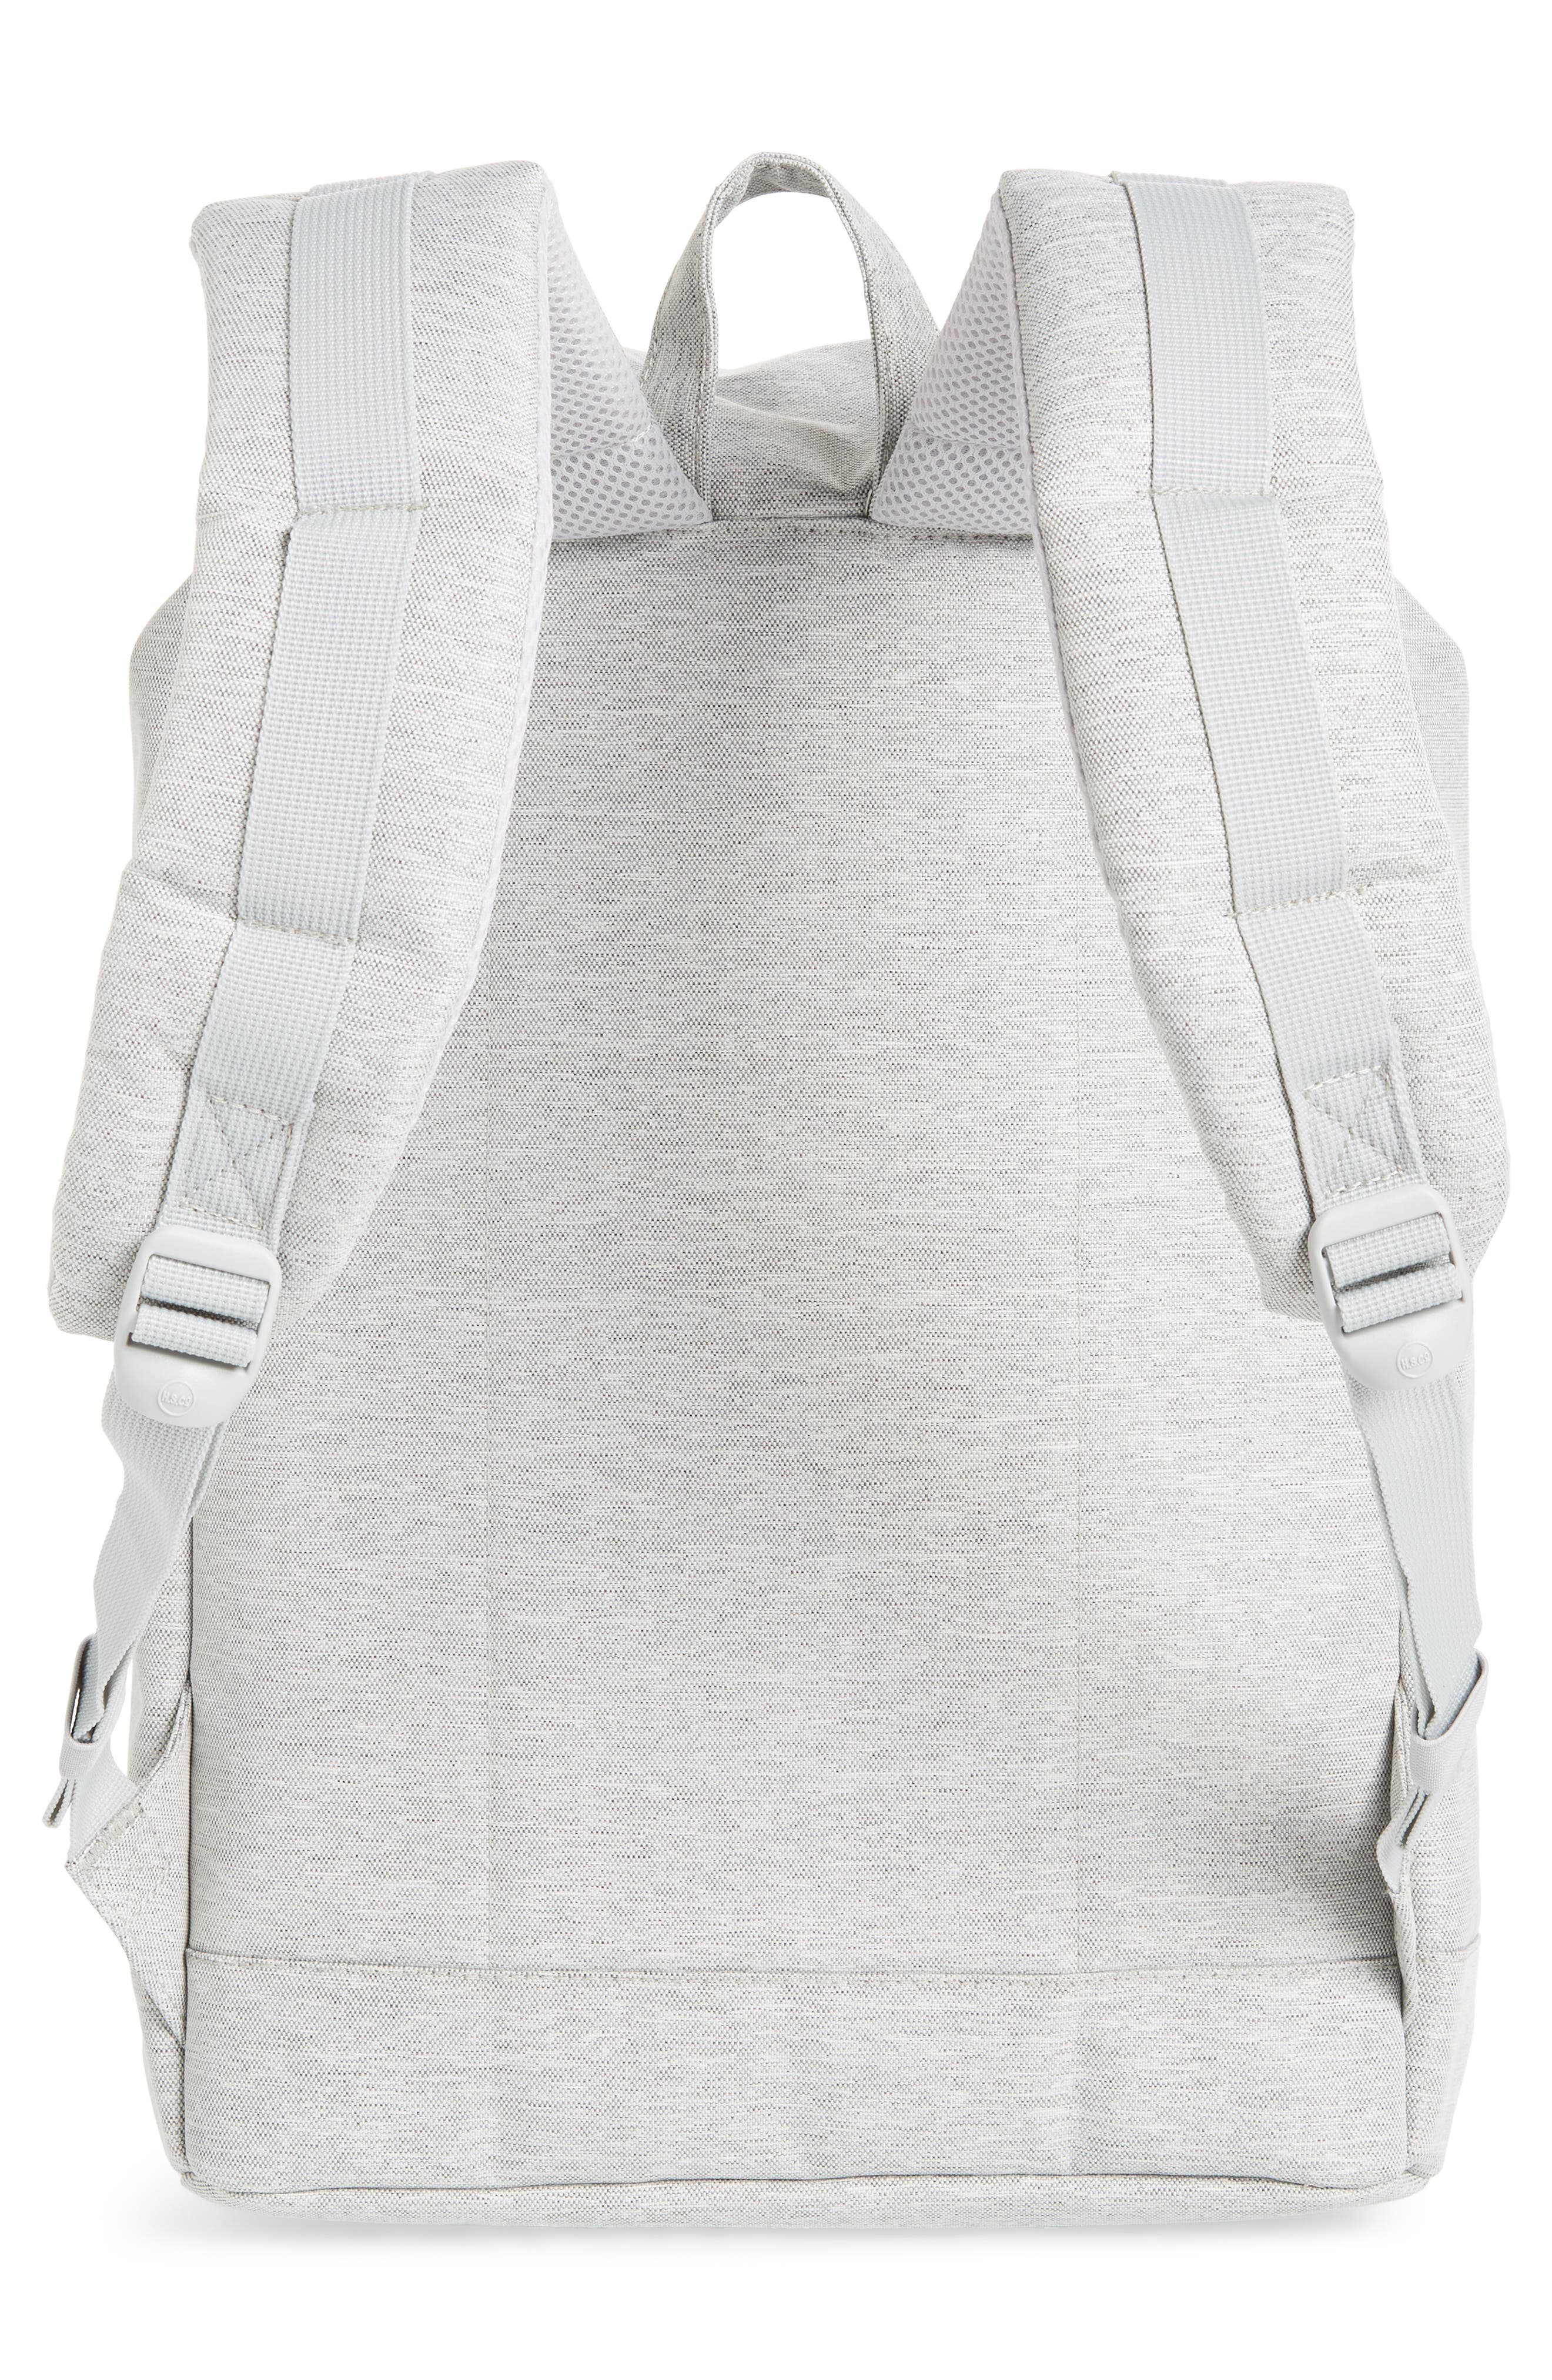 HERSCHEL SUPPLY CO., Retreat Backpack, Alternate thumbnail 4, color, LIGHT GREY CROSSHATCH/ GREY